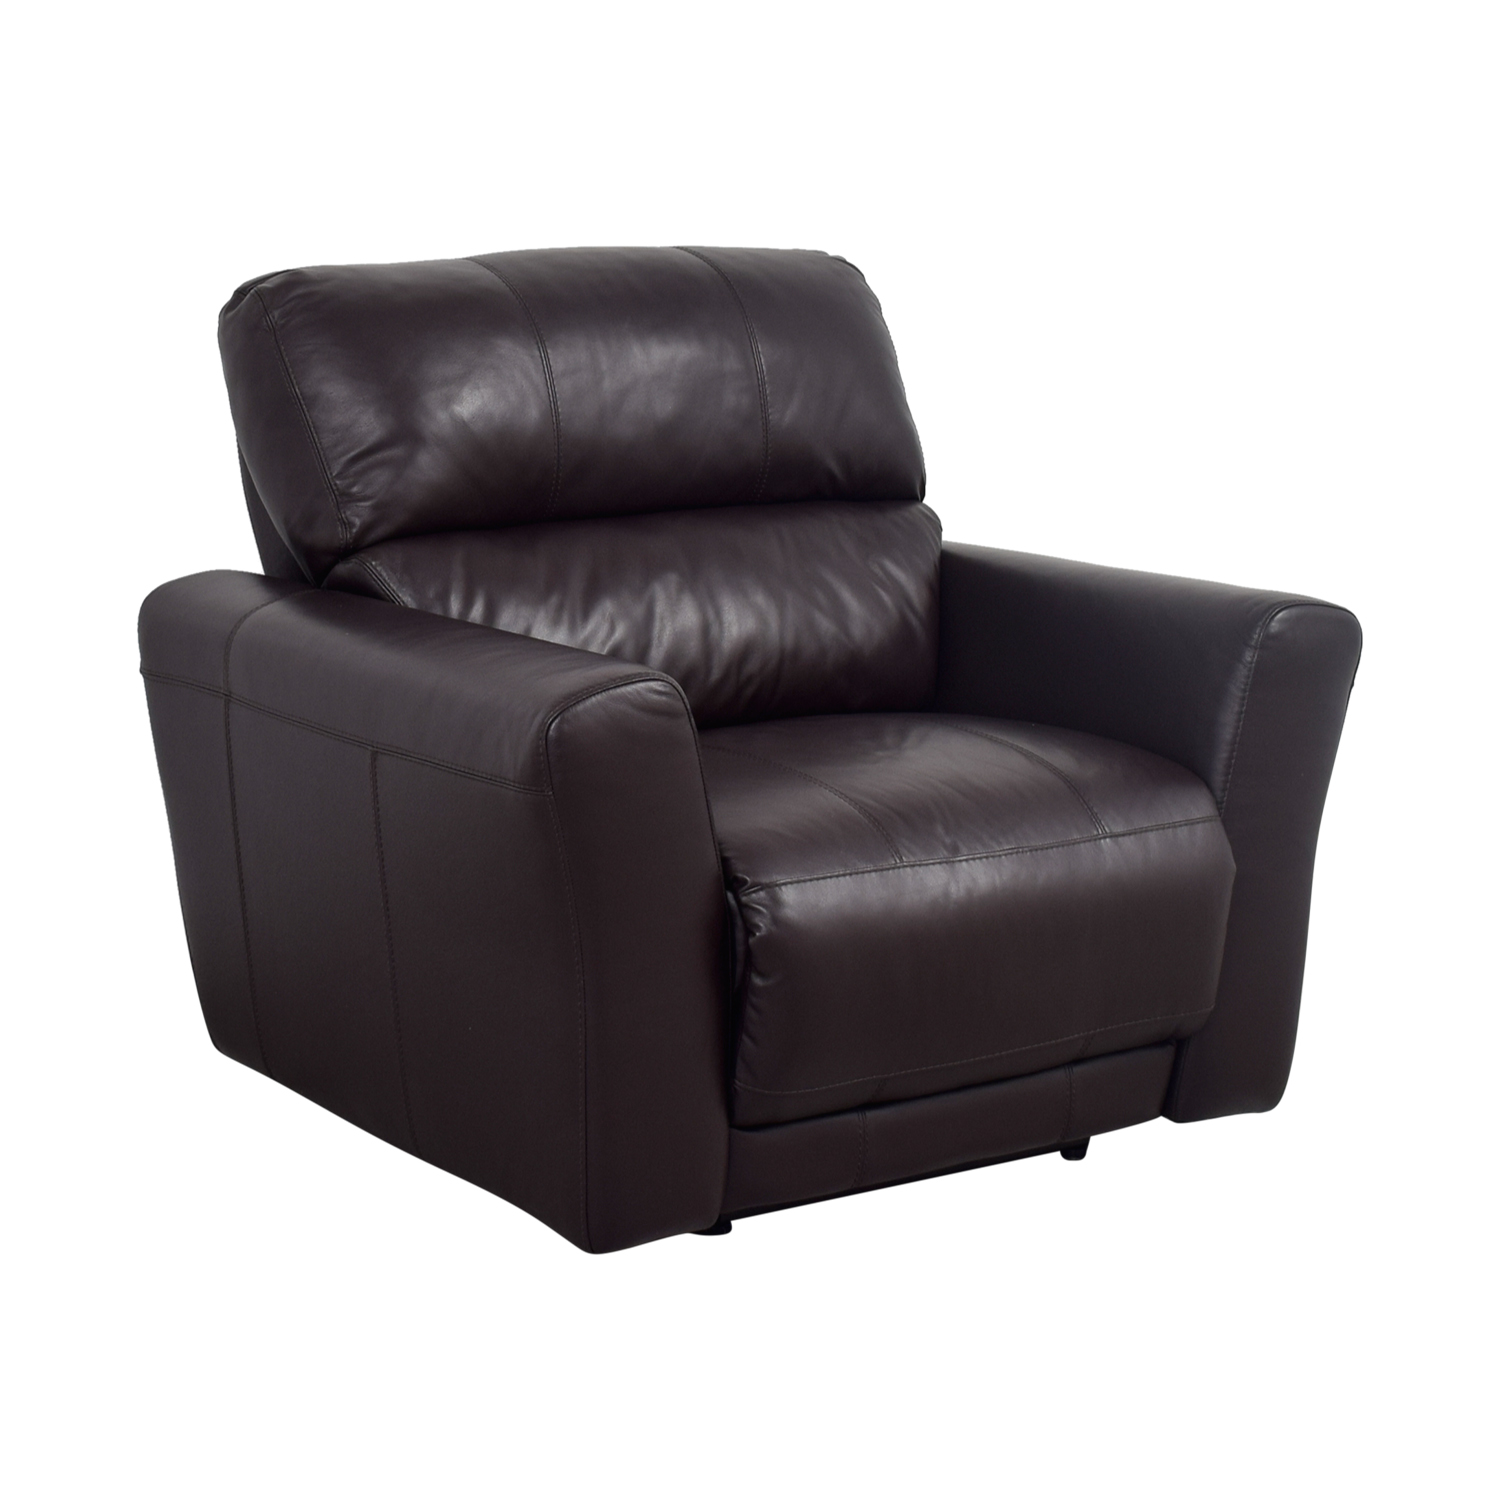 macy chairs recliners ergonomic chair for si joint pain 90 off macys chocolate leather recliner